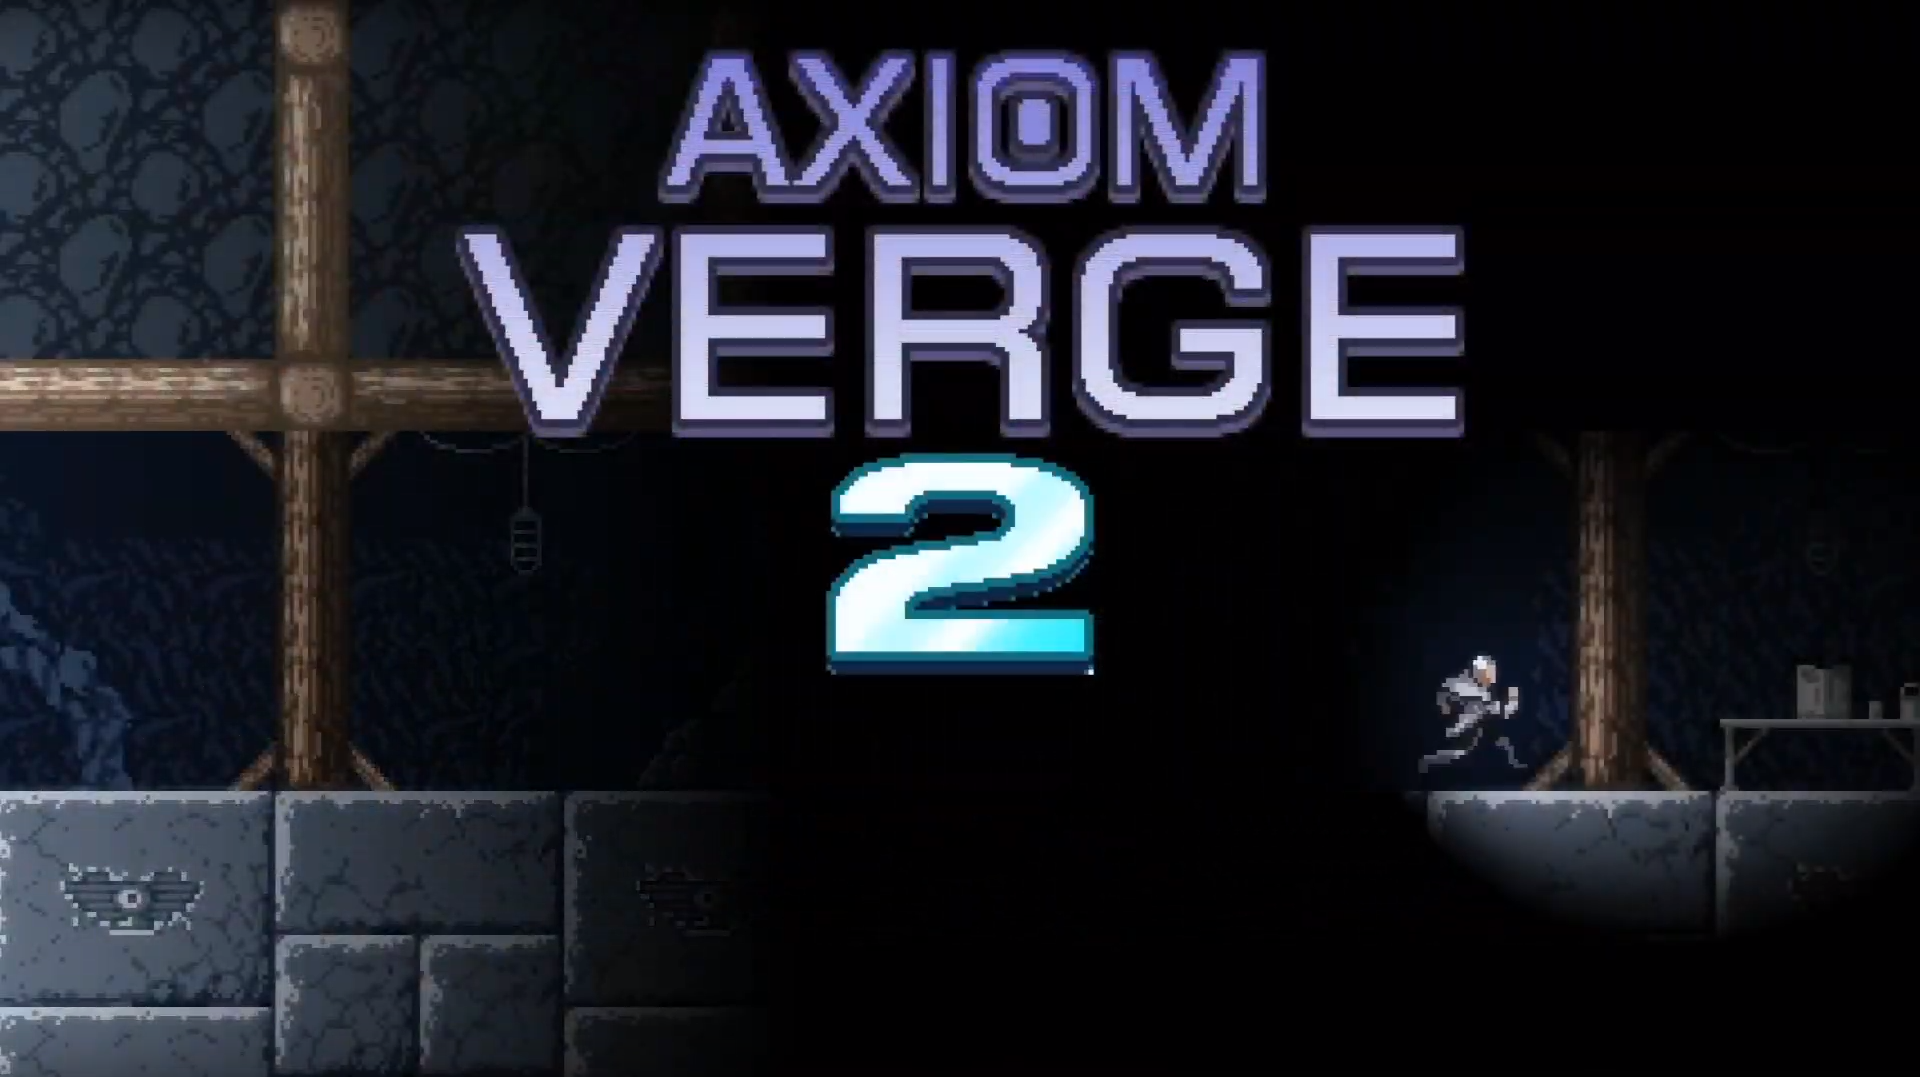 Axiom Verge 2 es anunciado para Nintendo Switch